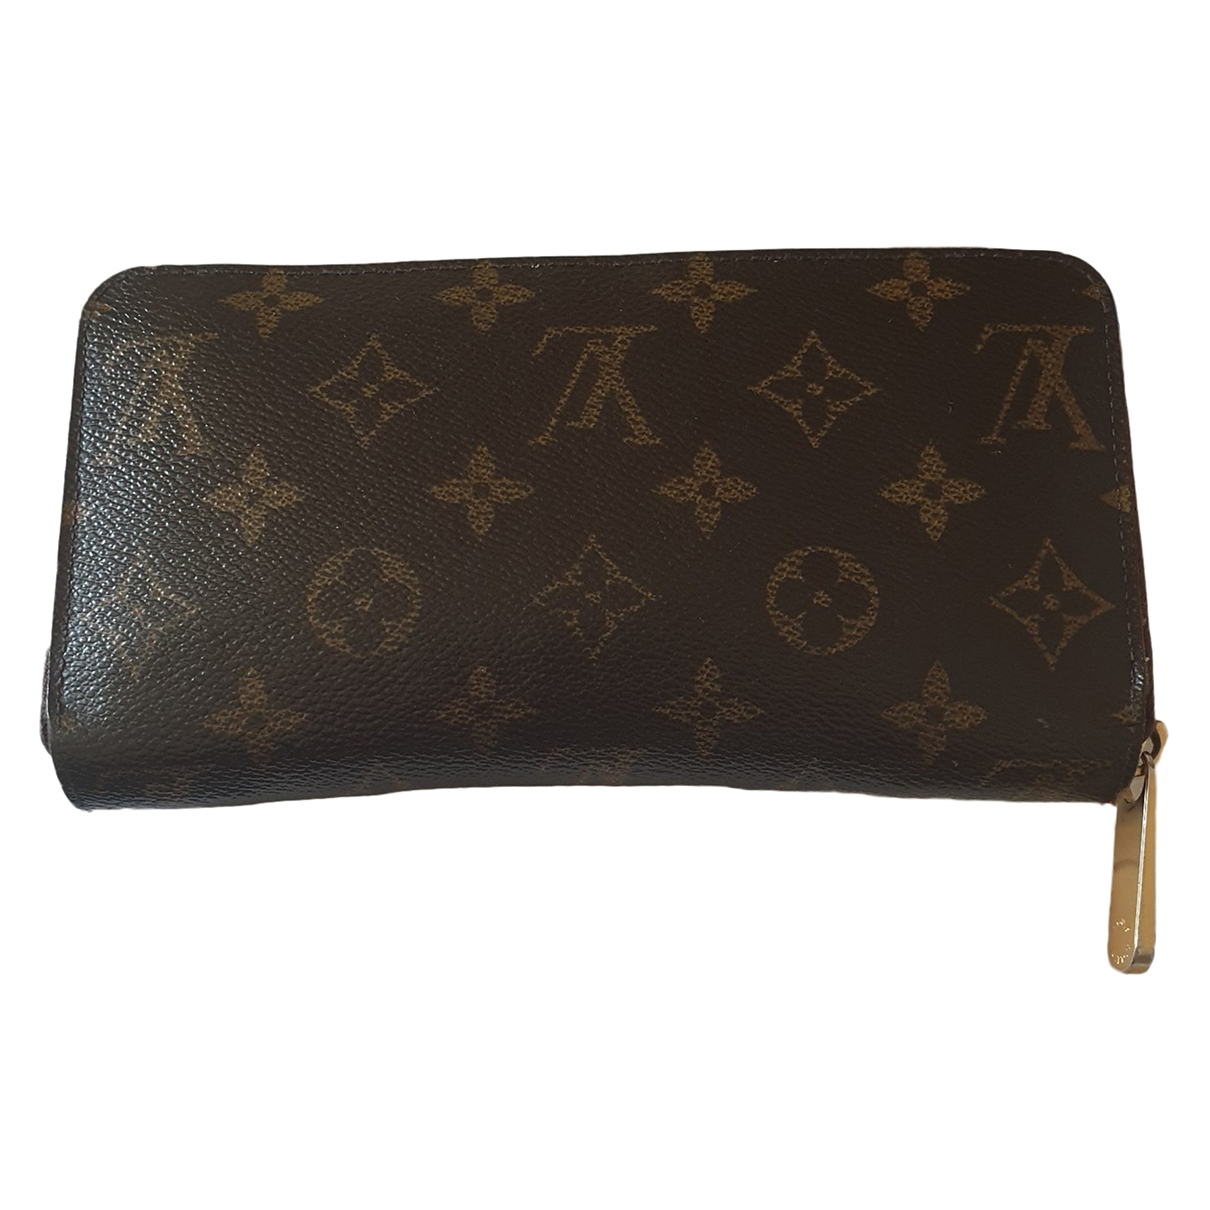 Louis Vuitton Zippy Portemonnaie in  Braun Leinen